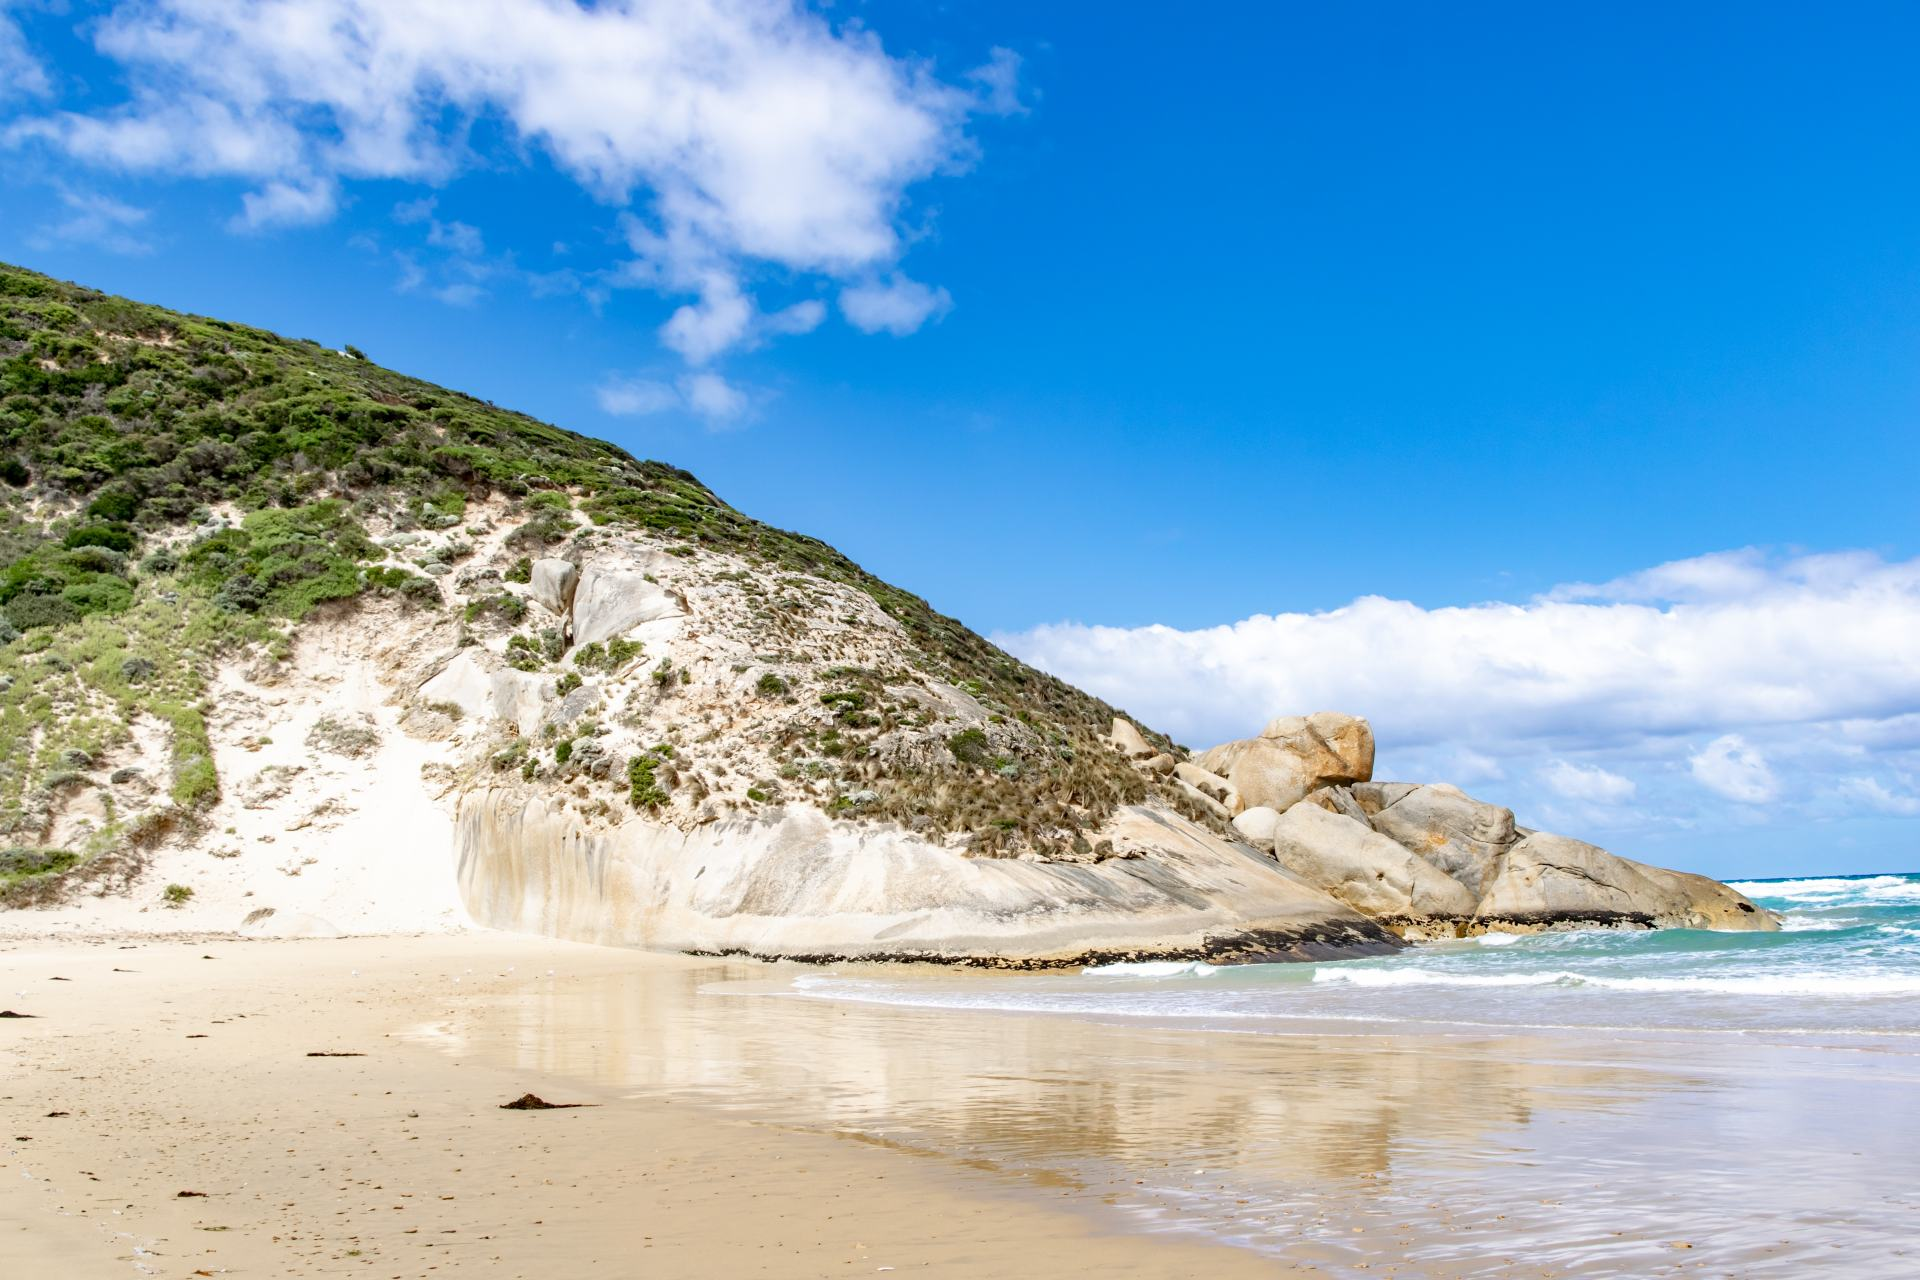 darby beach wilsons promontory national park